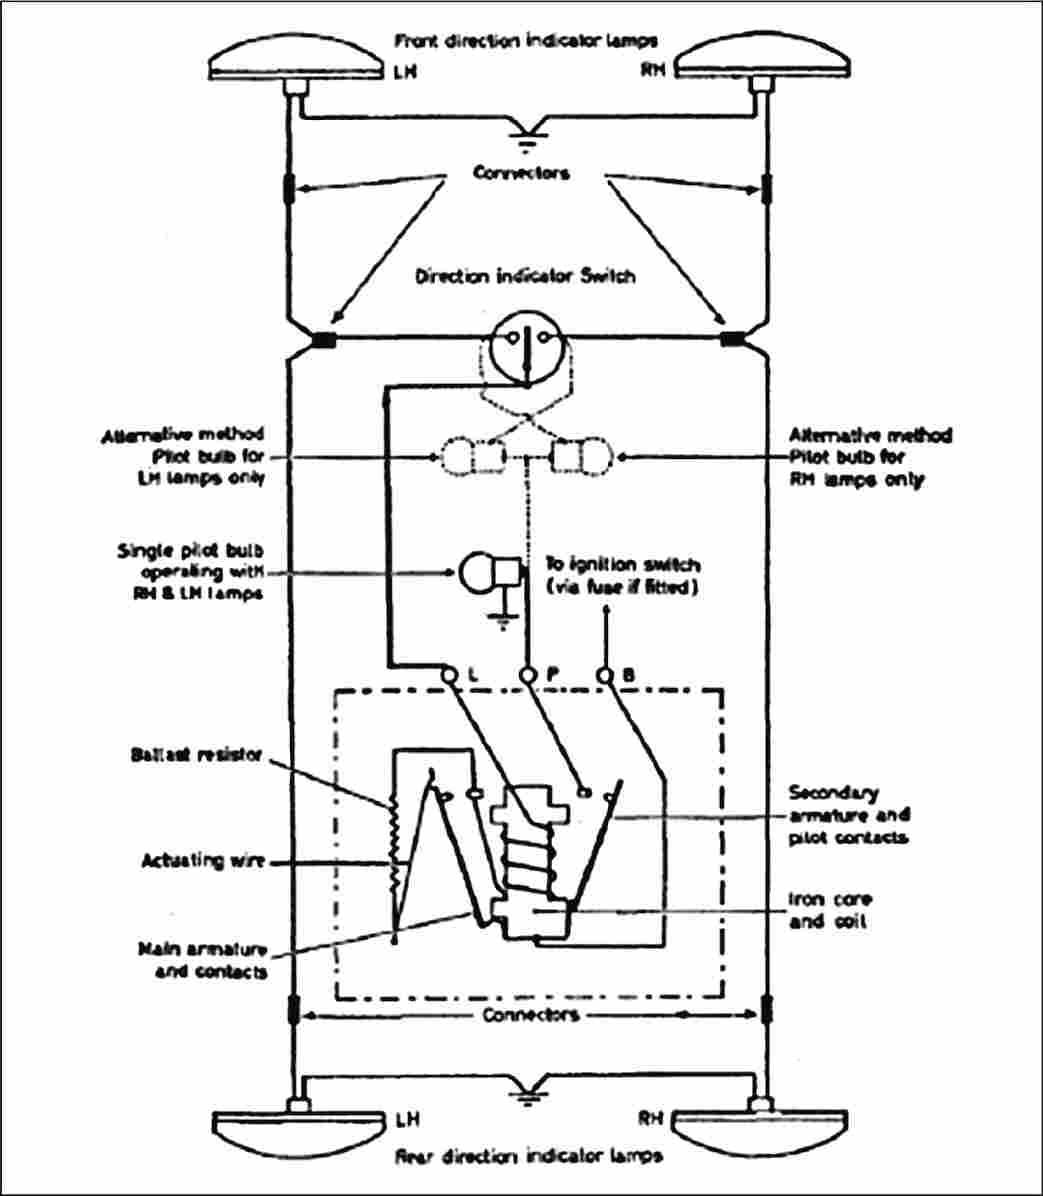 standard_flasher_diagram modern flasher circuits flasher unit wiring diagram at metegol.co